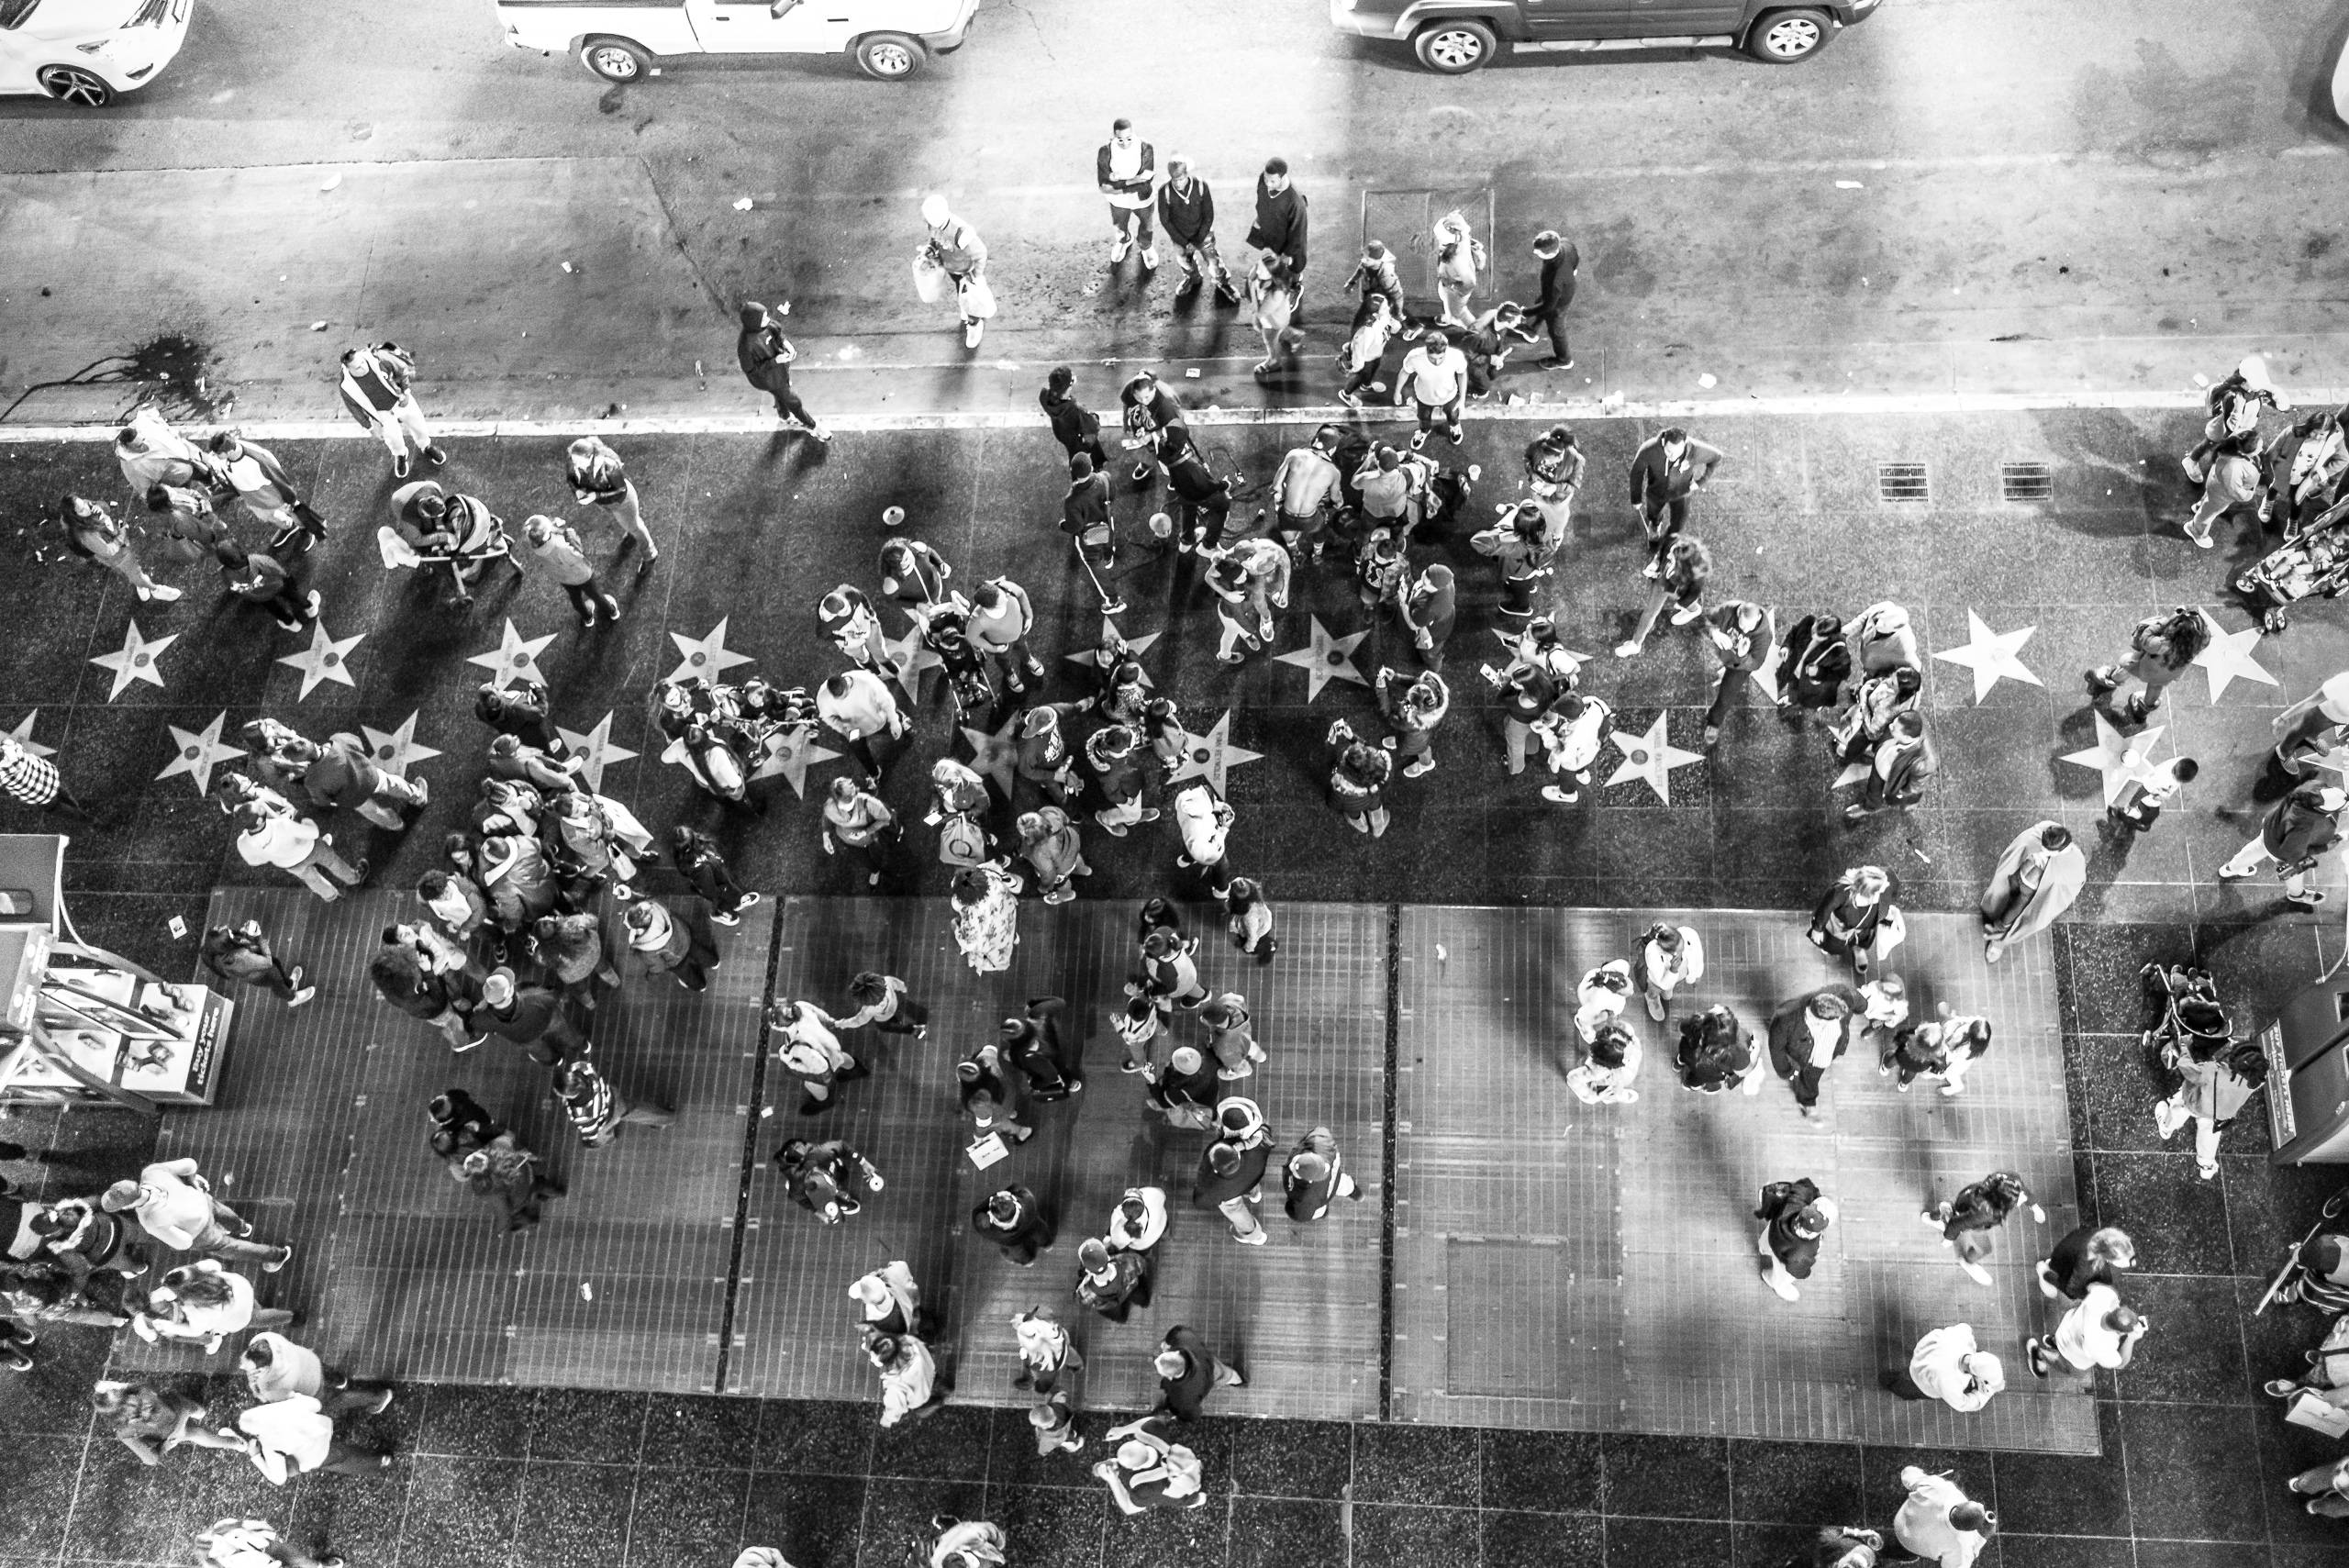 shot looking down on the sidewalk and street at the Hollywood & Highland center / Dolby Theatre on Hollywood Blvd. Many dozens of people are scattered on the sidewalk and street and interspersed between them are stars  on the Hollywood Walk of Fame